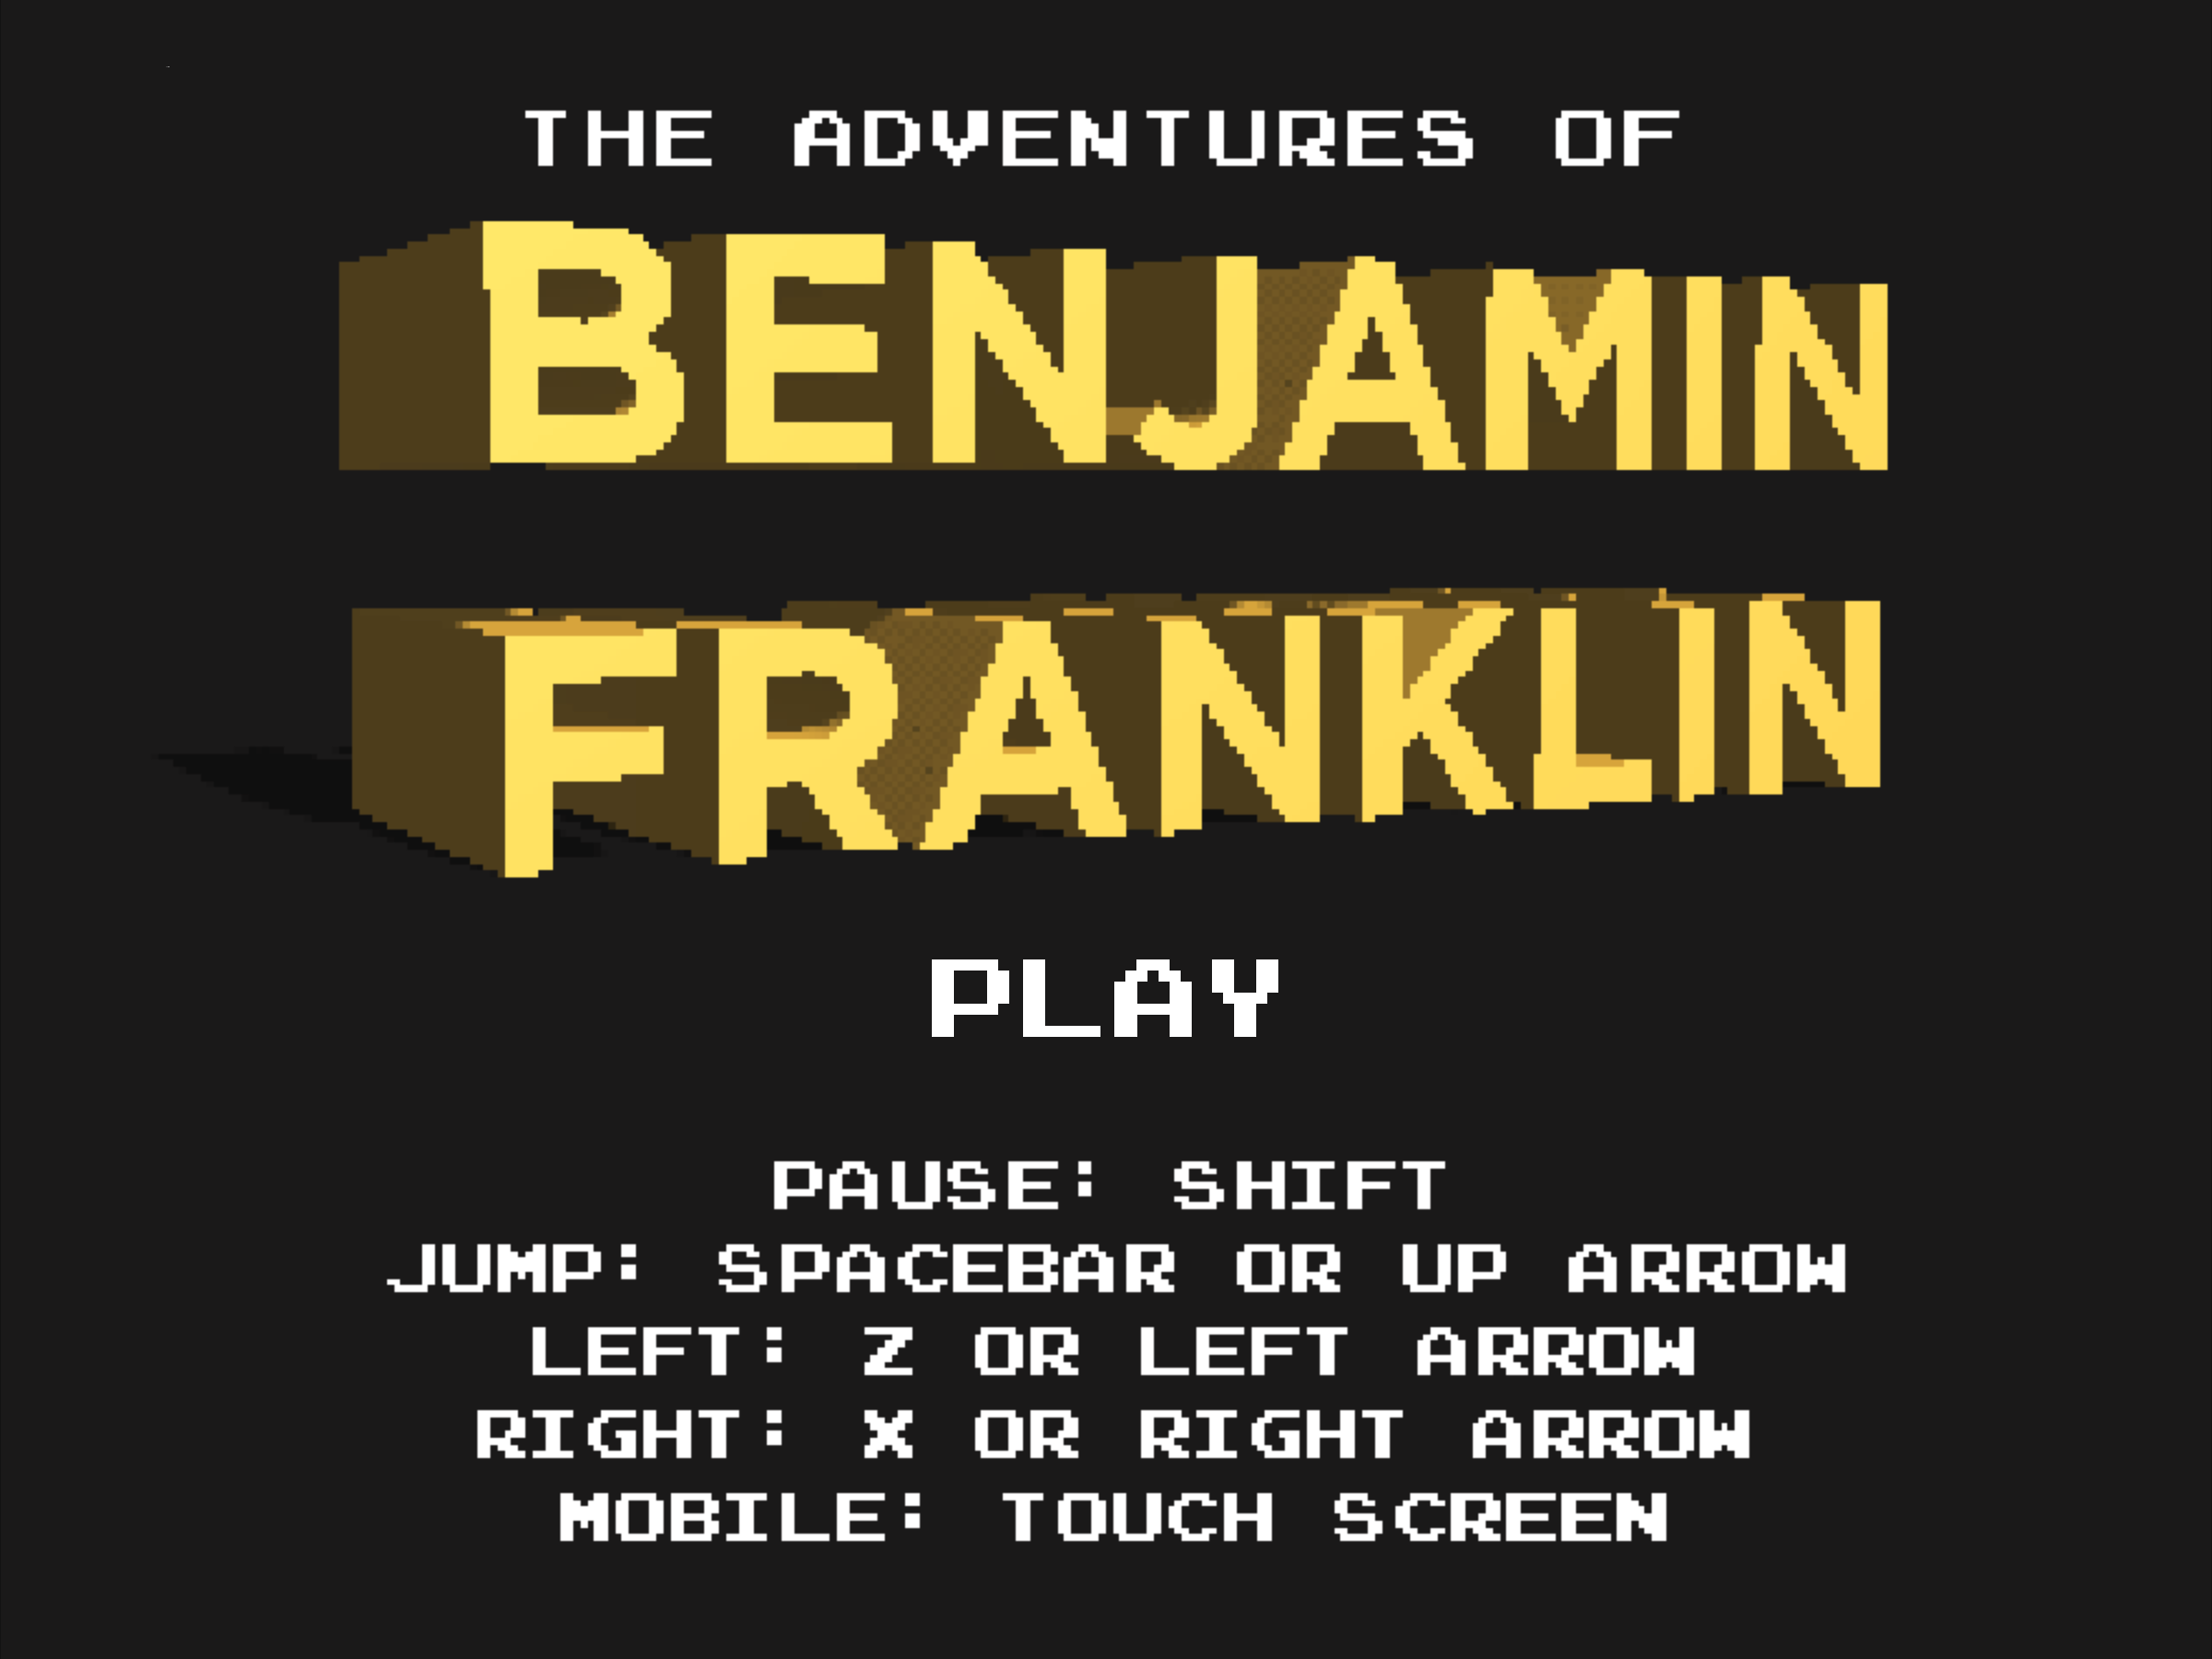 8 Bit Ben Game Start Screen for Mobile Devices